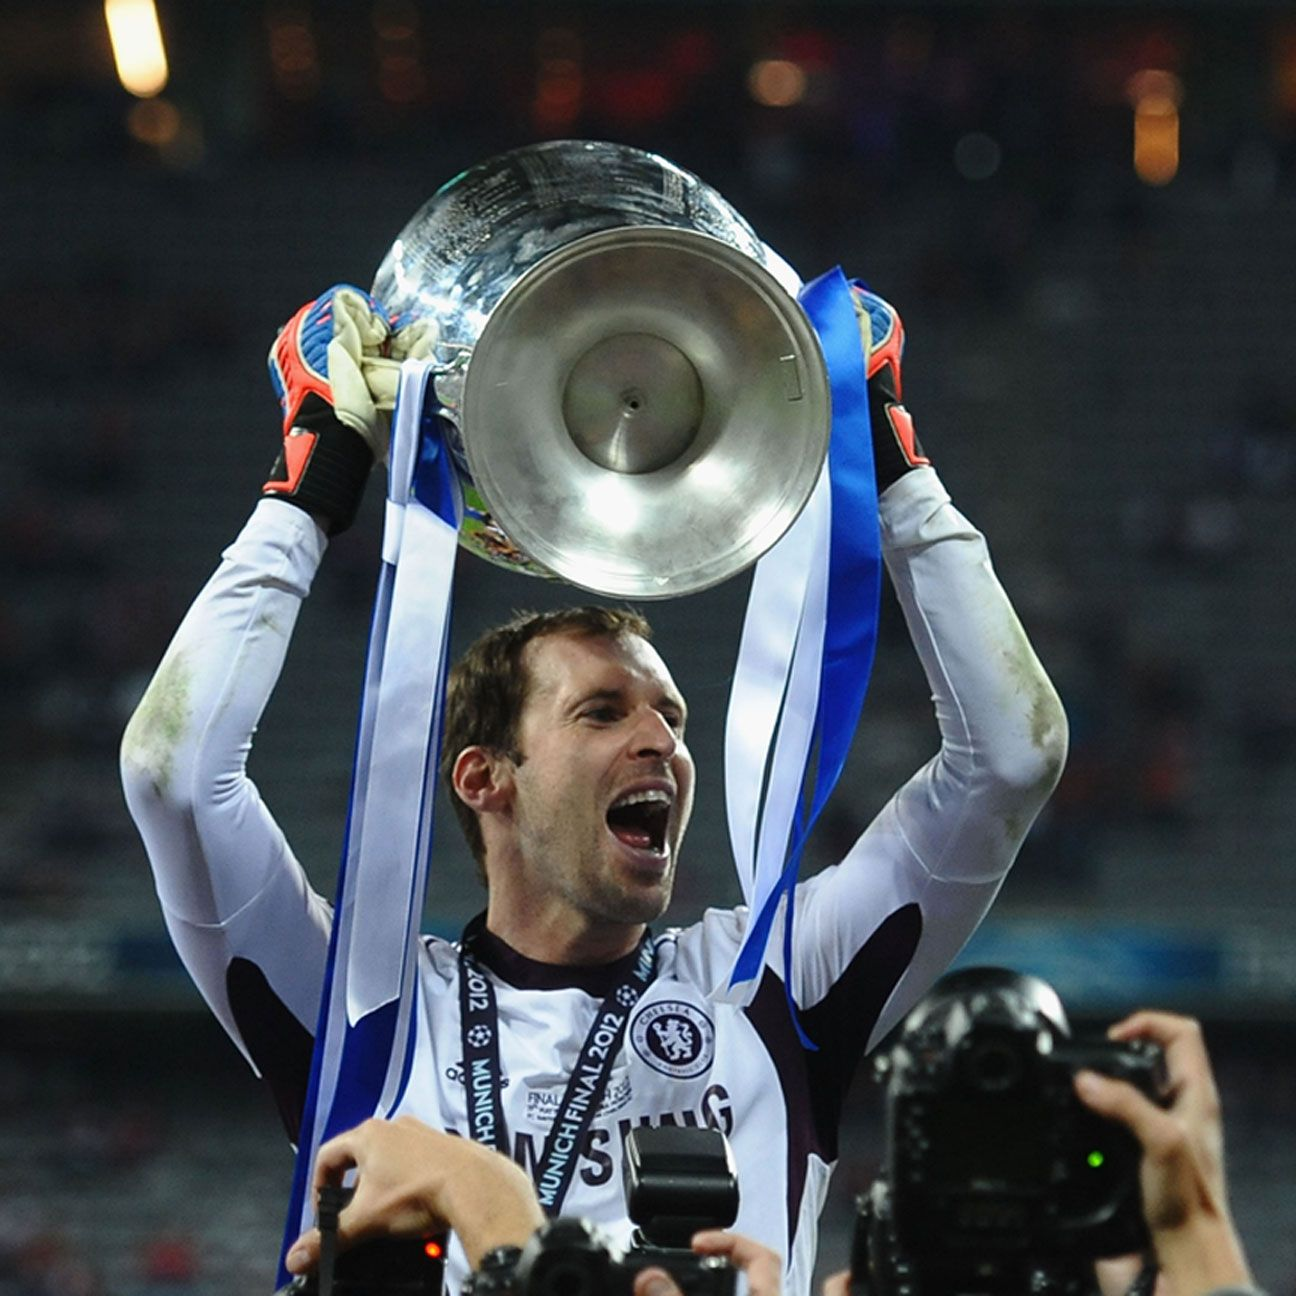 Without Petr Cech's penalty saves, Chelsea would not have won the 2012 Champions League final.